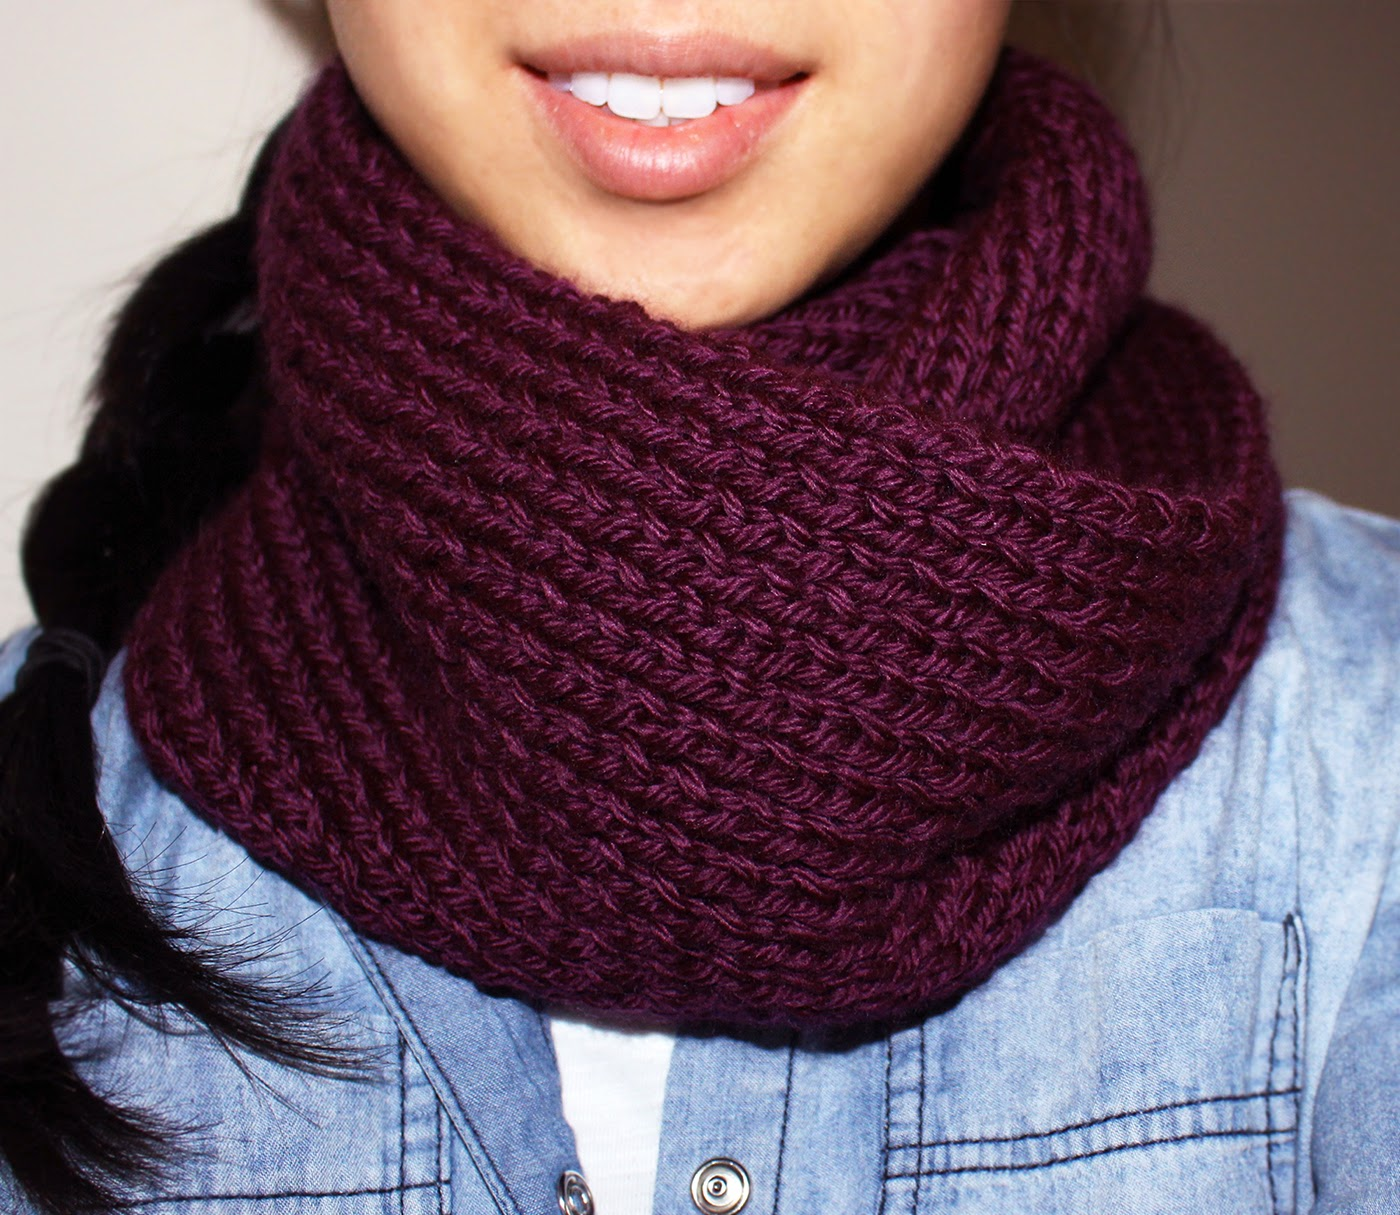 Knitting Pattern Infinity Scarf Straight Needles : Purllin: Acai Infinity Circle Scarf [free knitting pattern]